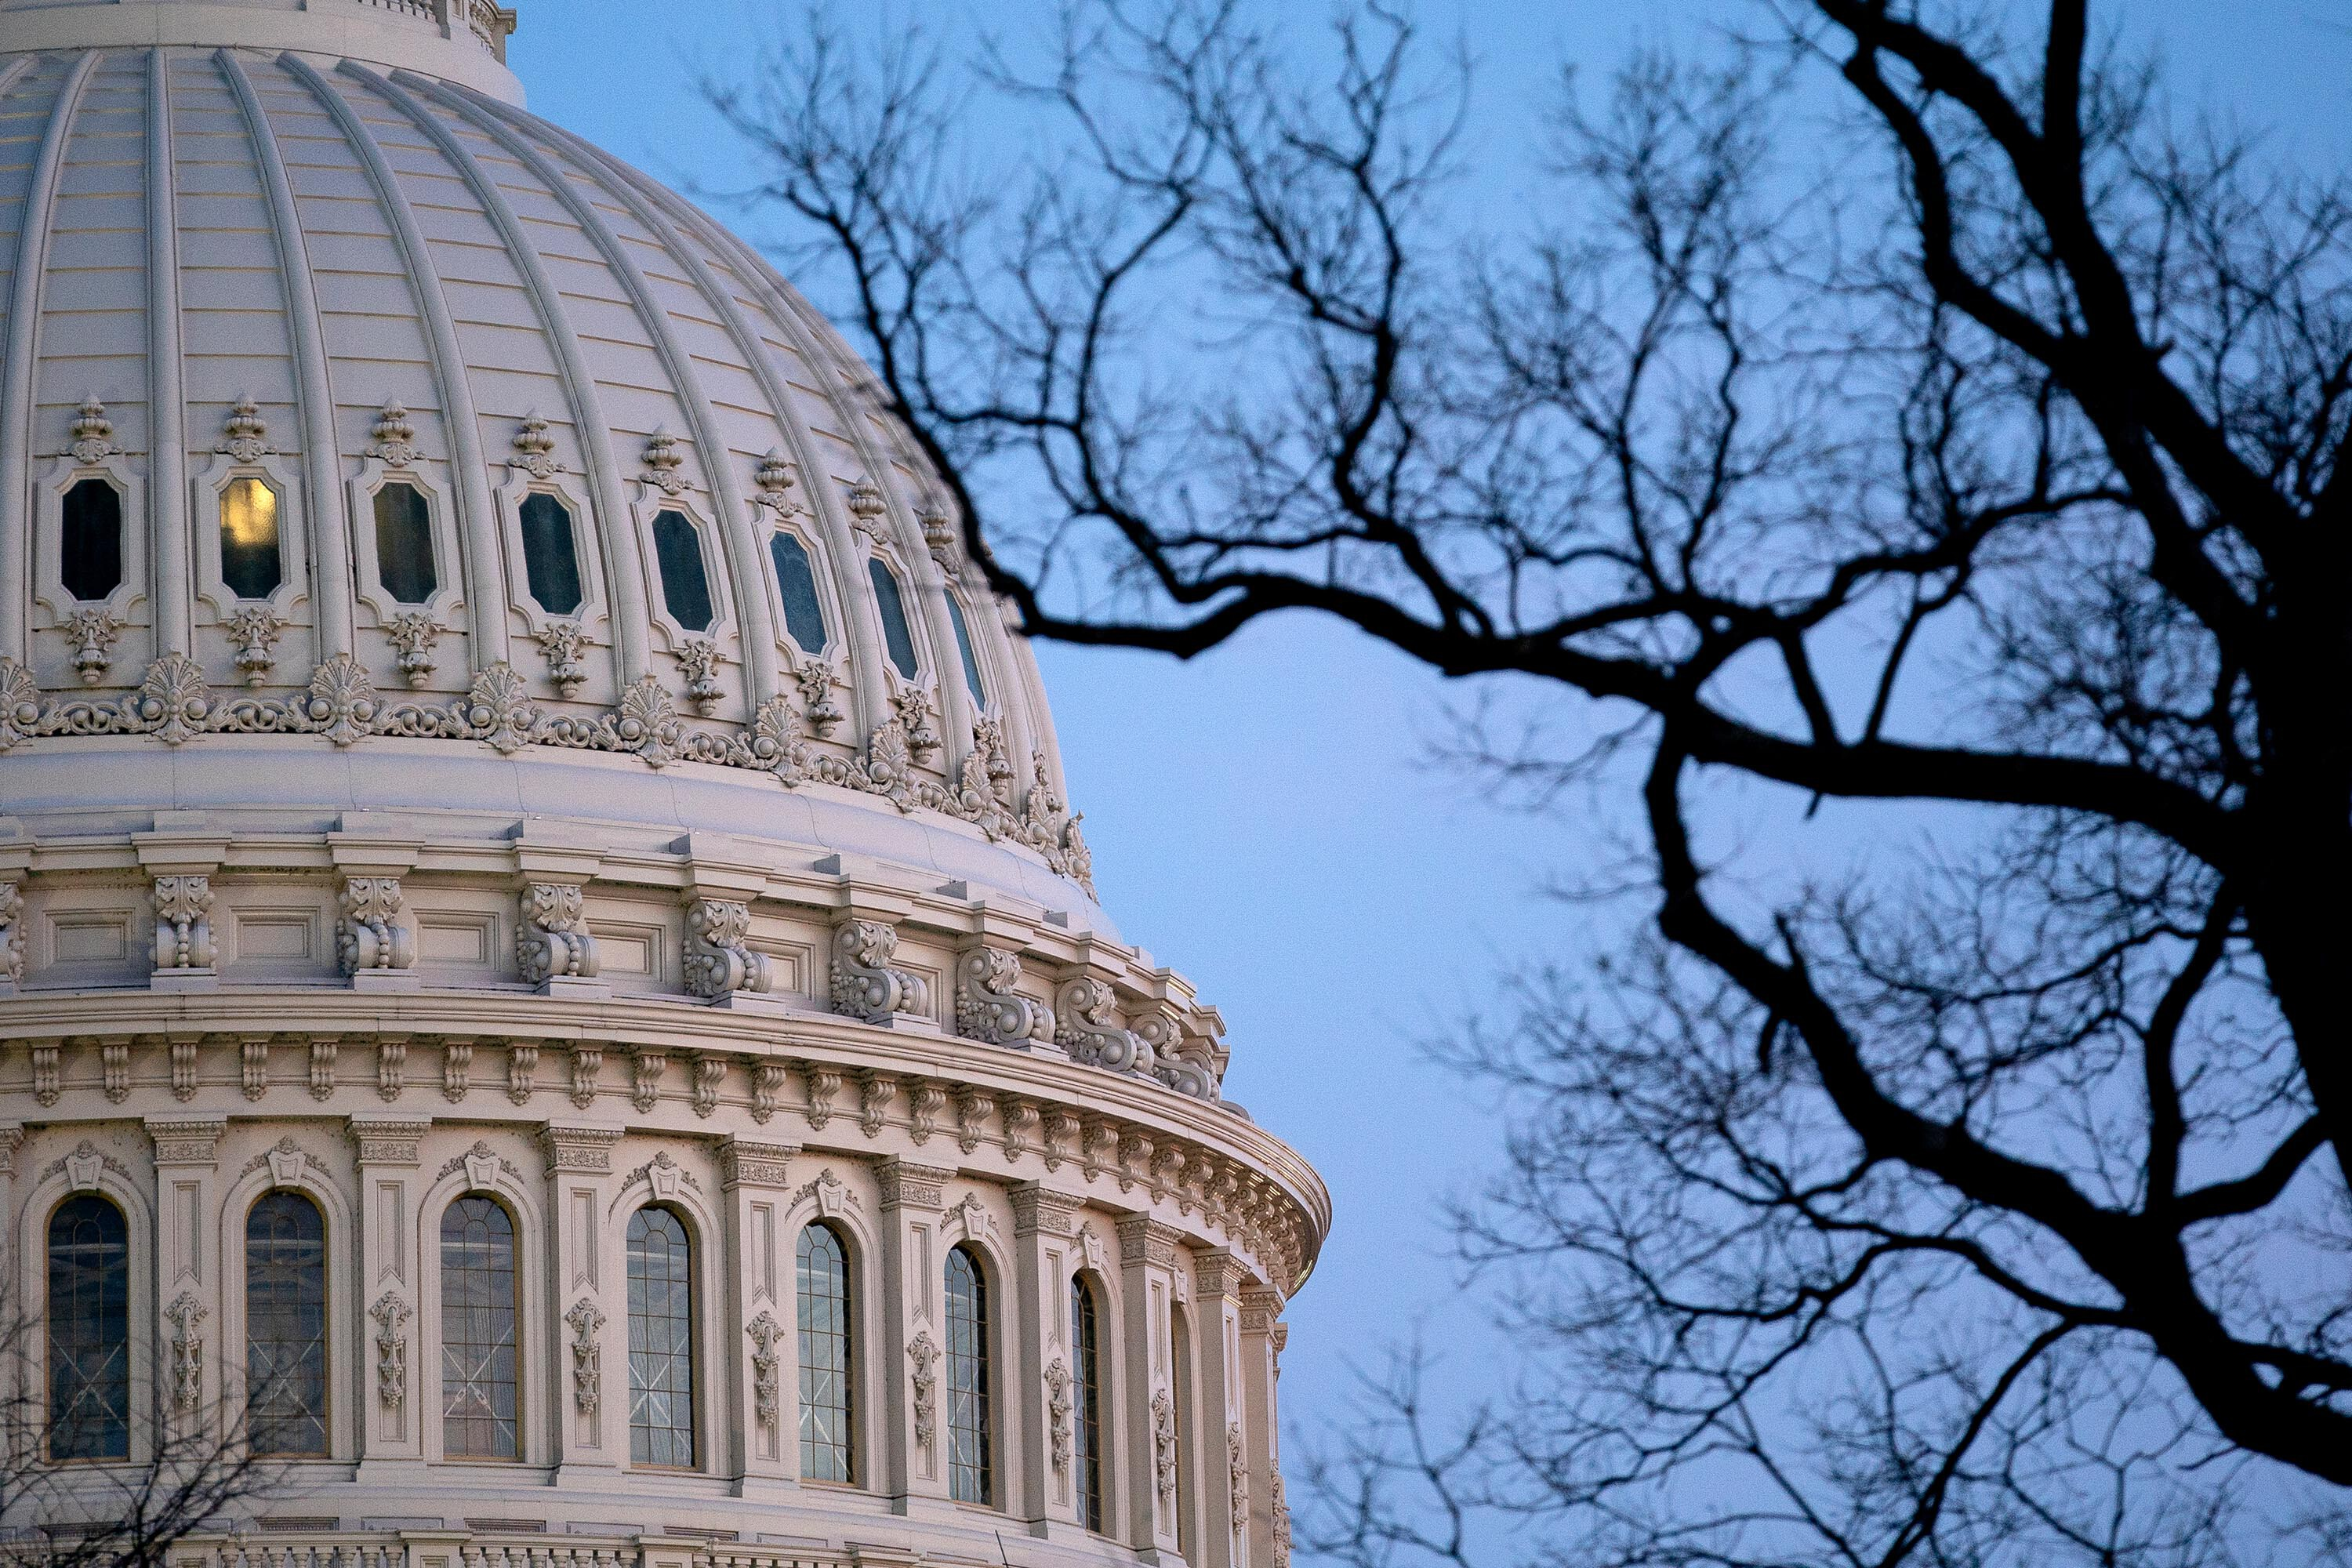 Police officer attacked by woman carrying a baseball bat near US Capitol